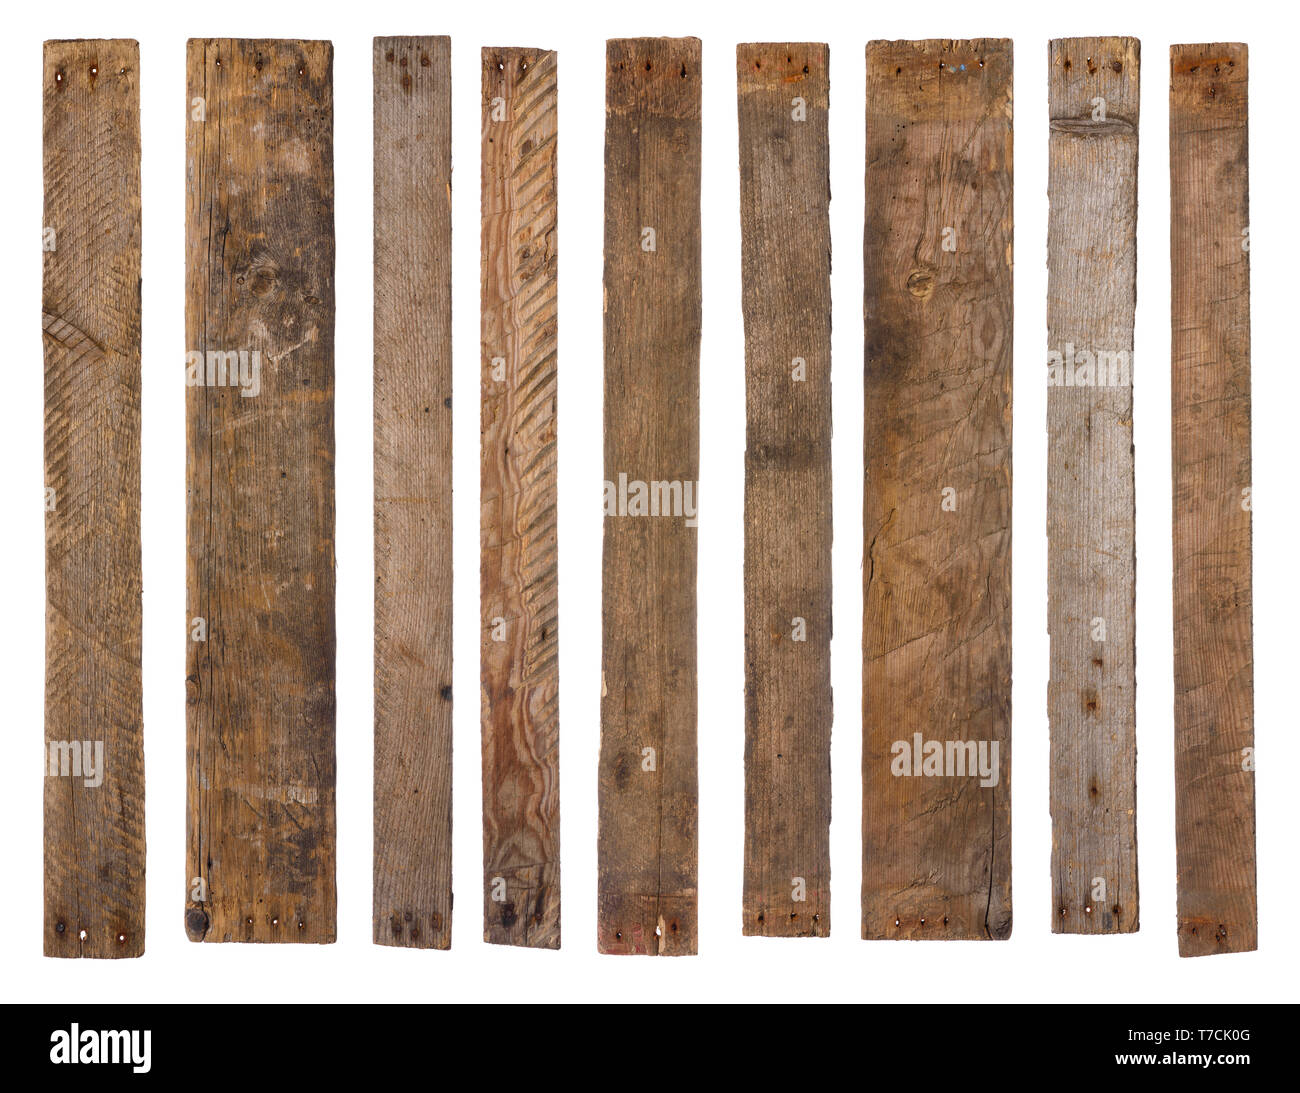 Old wooden planks isolated on white - Stock Image